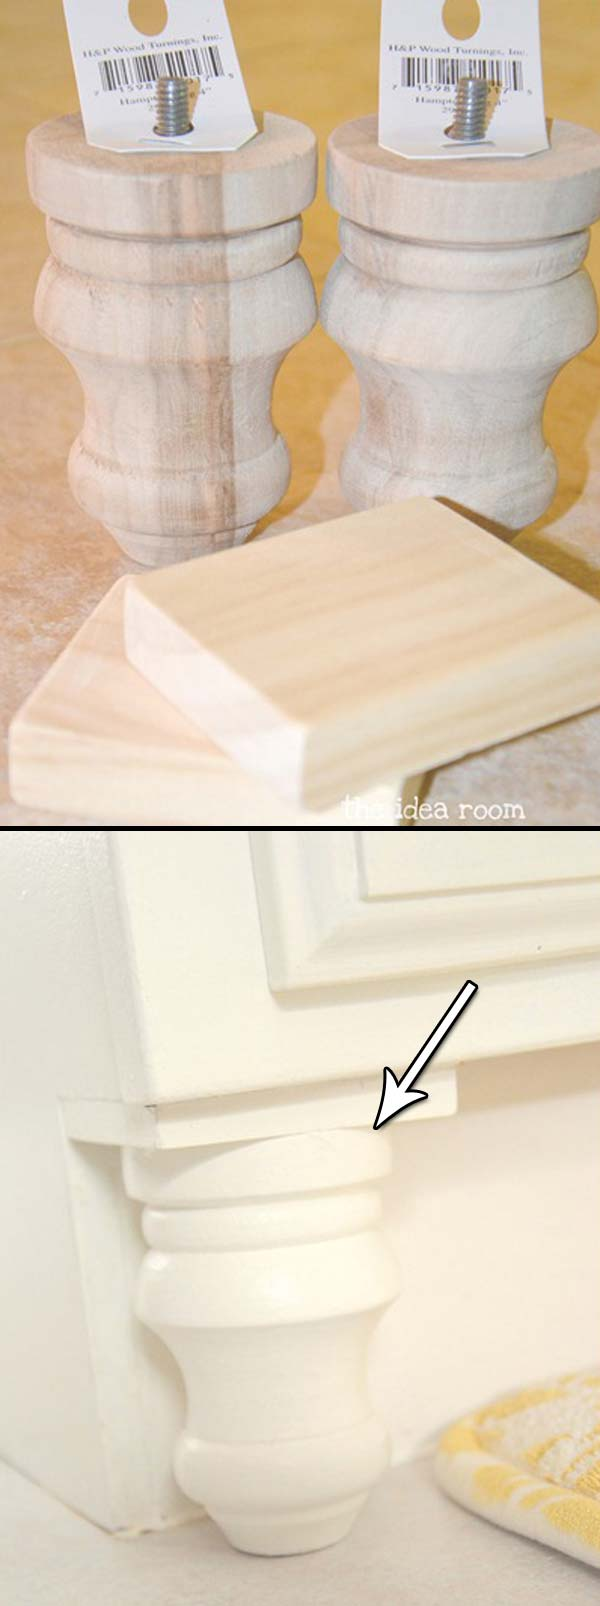 remodeling-projects-by-adding-molding-2